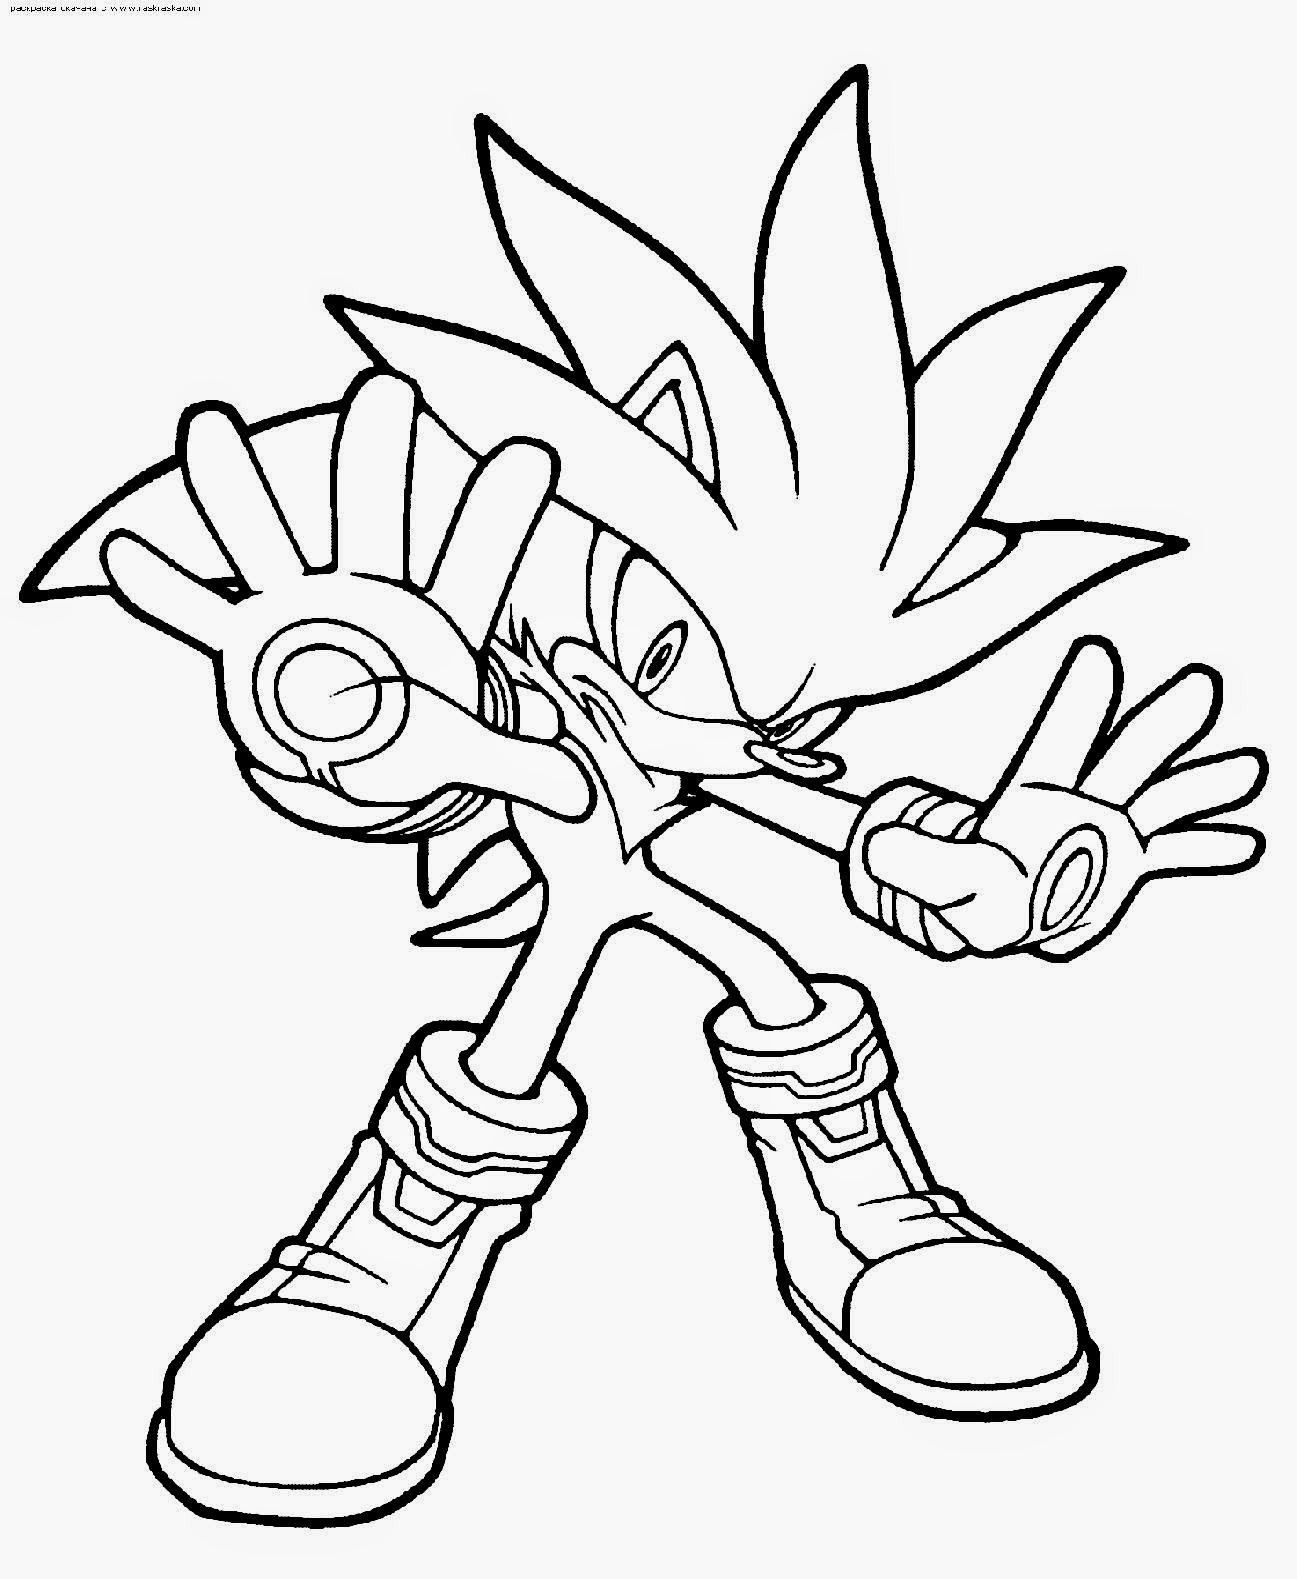 Sonic Coloring Sheets Free Coloring Sheet Sonic The Hedgehog Coloring Pages Free